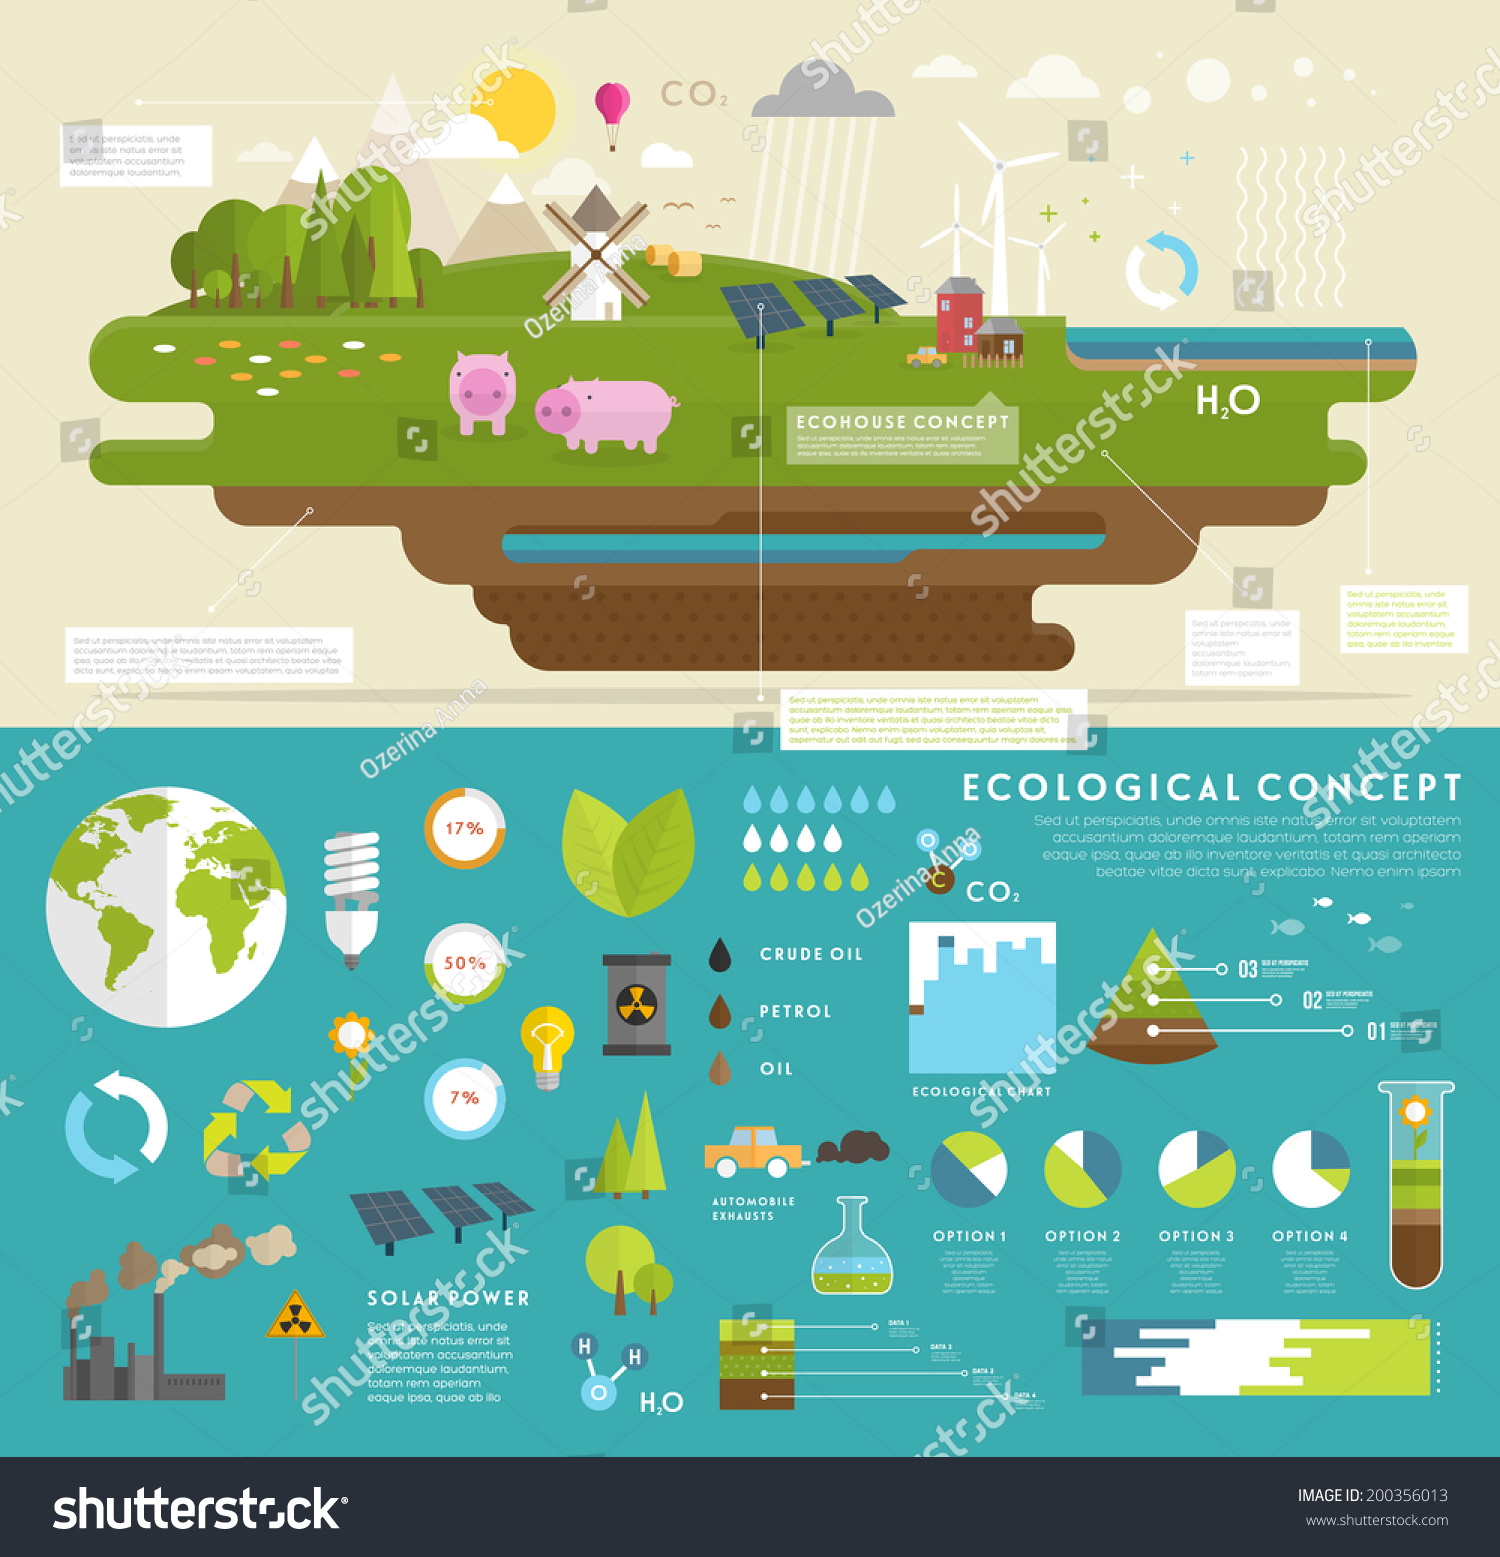 ecology organic pollution Effect of aqatic pollution on fish & fisheries  pollution ecology- skagarwal,  documents similar to effect of aqatic pollution on fish & fisheries.